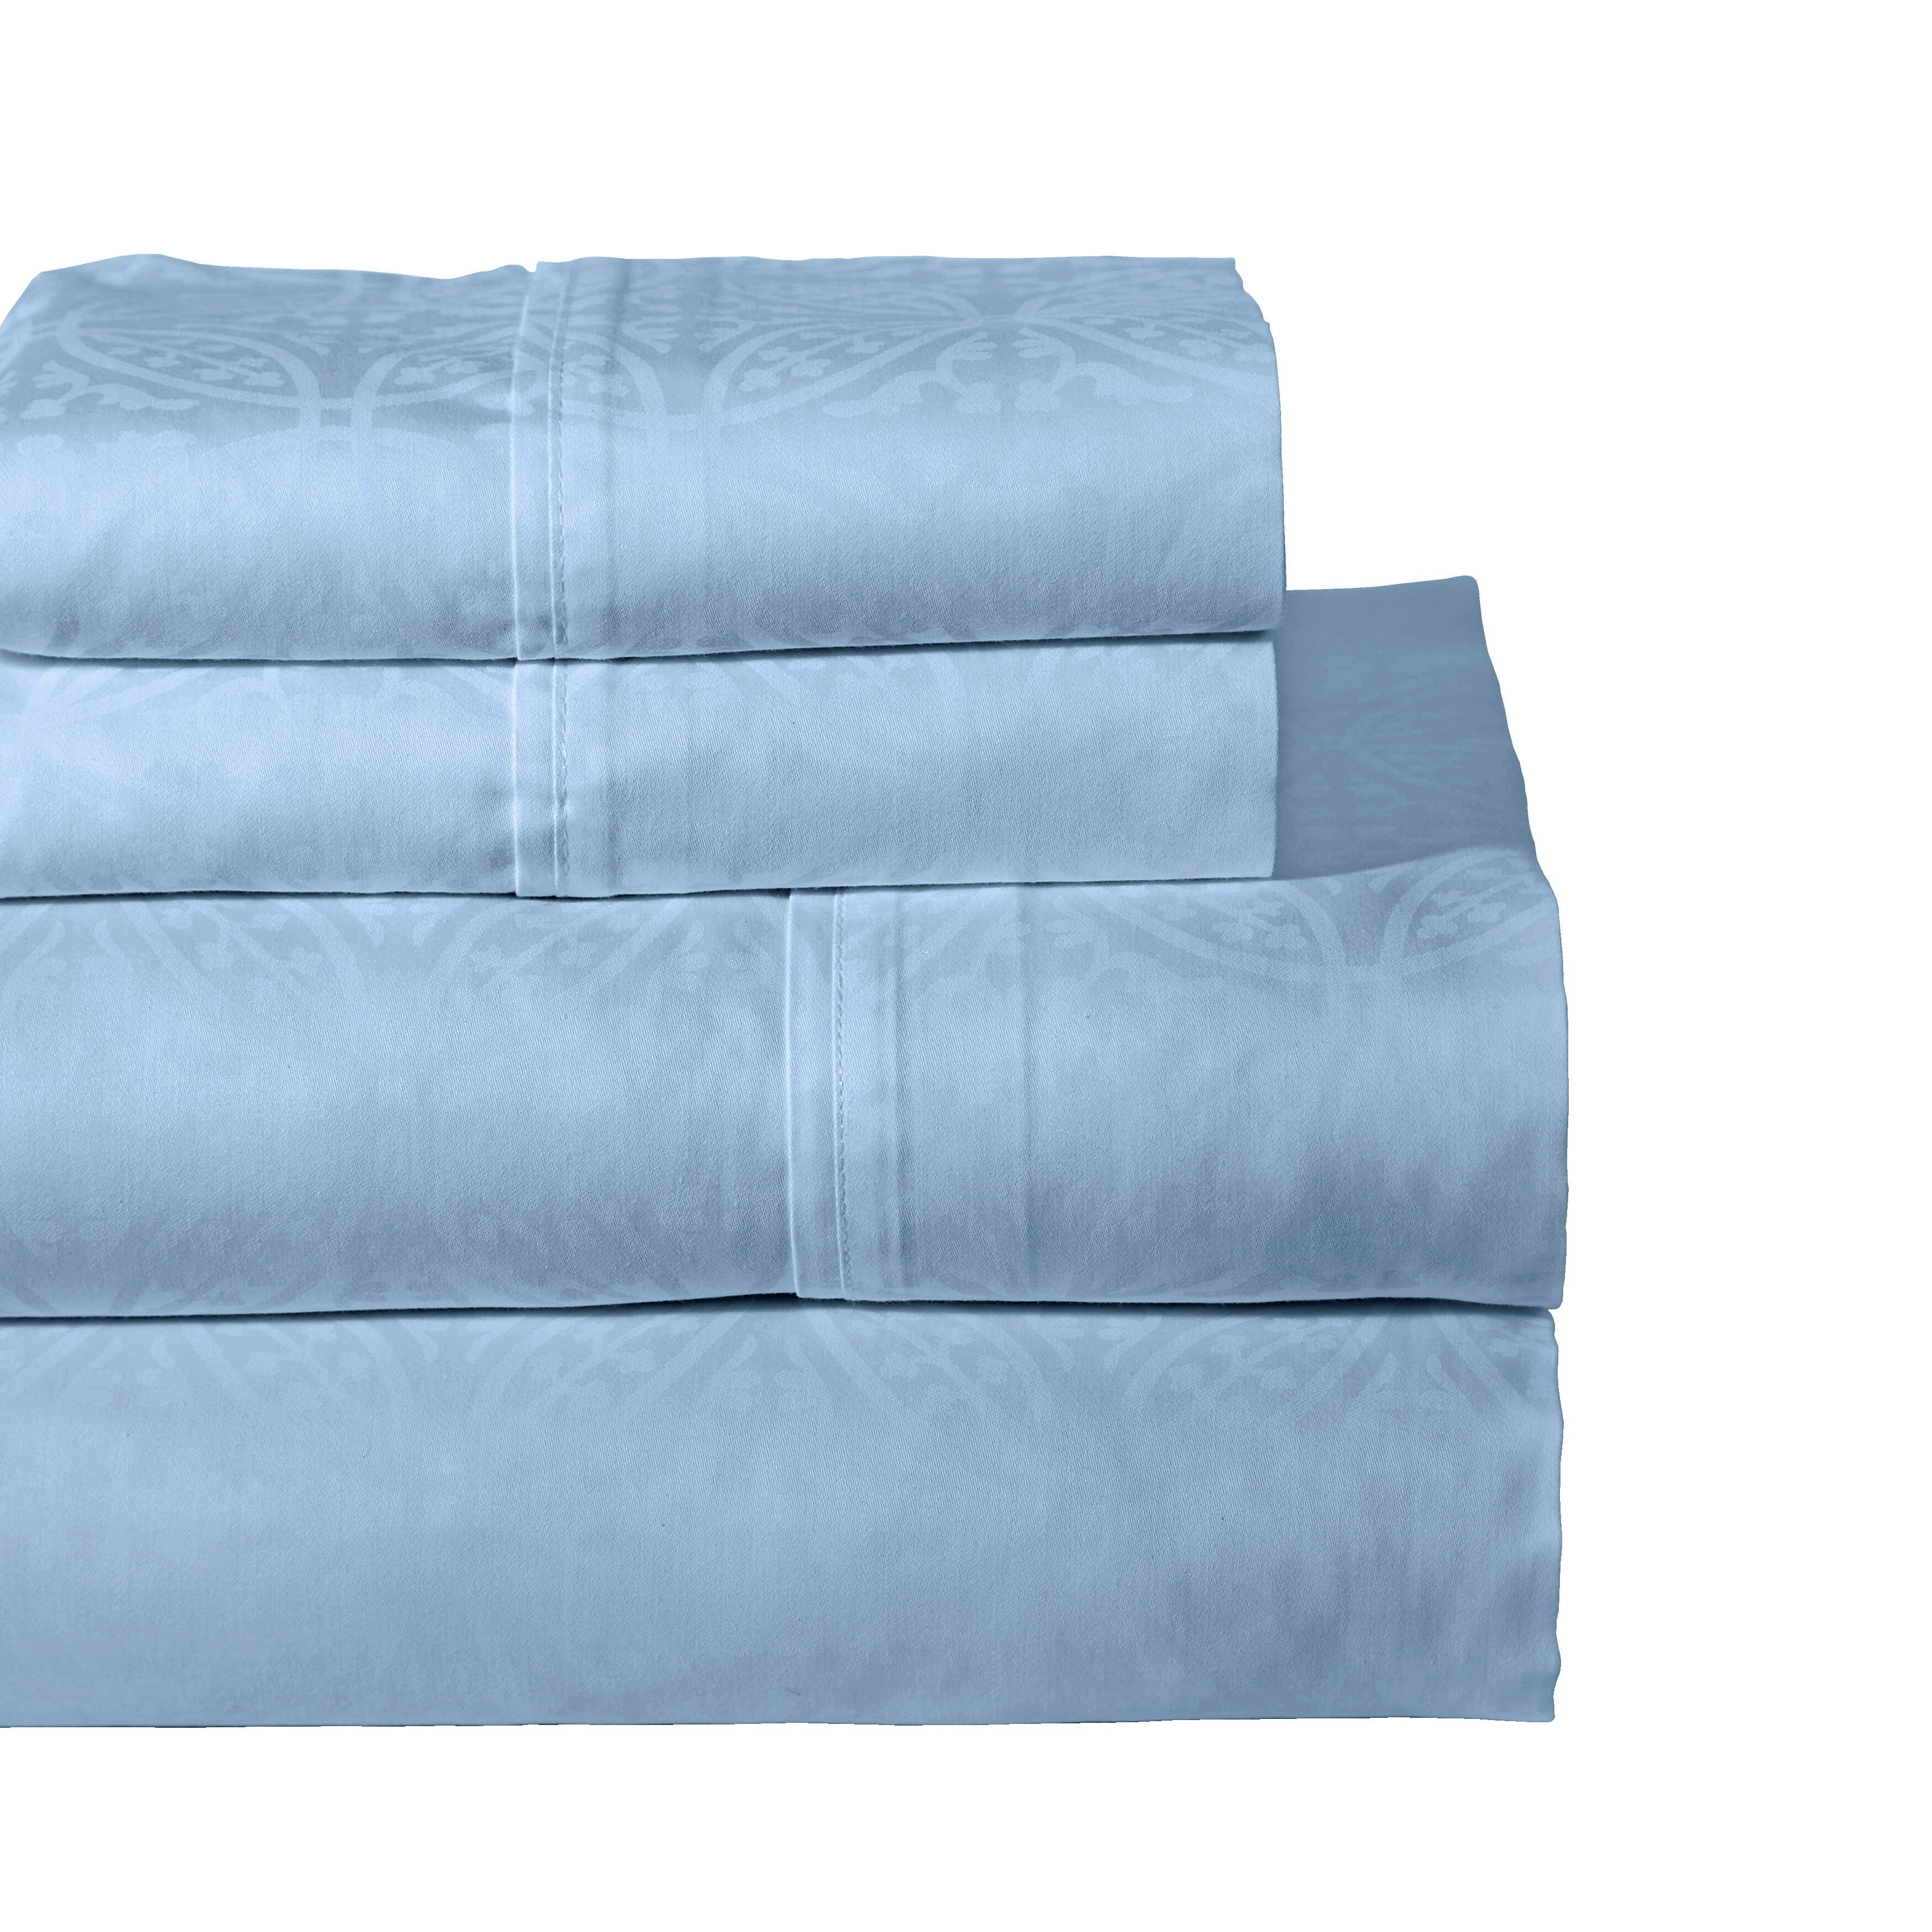 Pointehaven 300 thread count cotton sheet set reviews for What is thread count in sheets